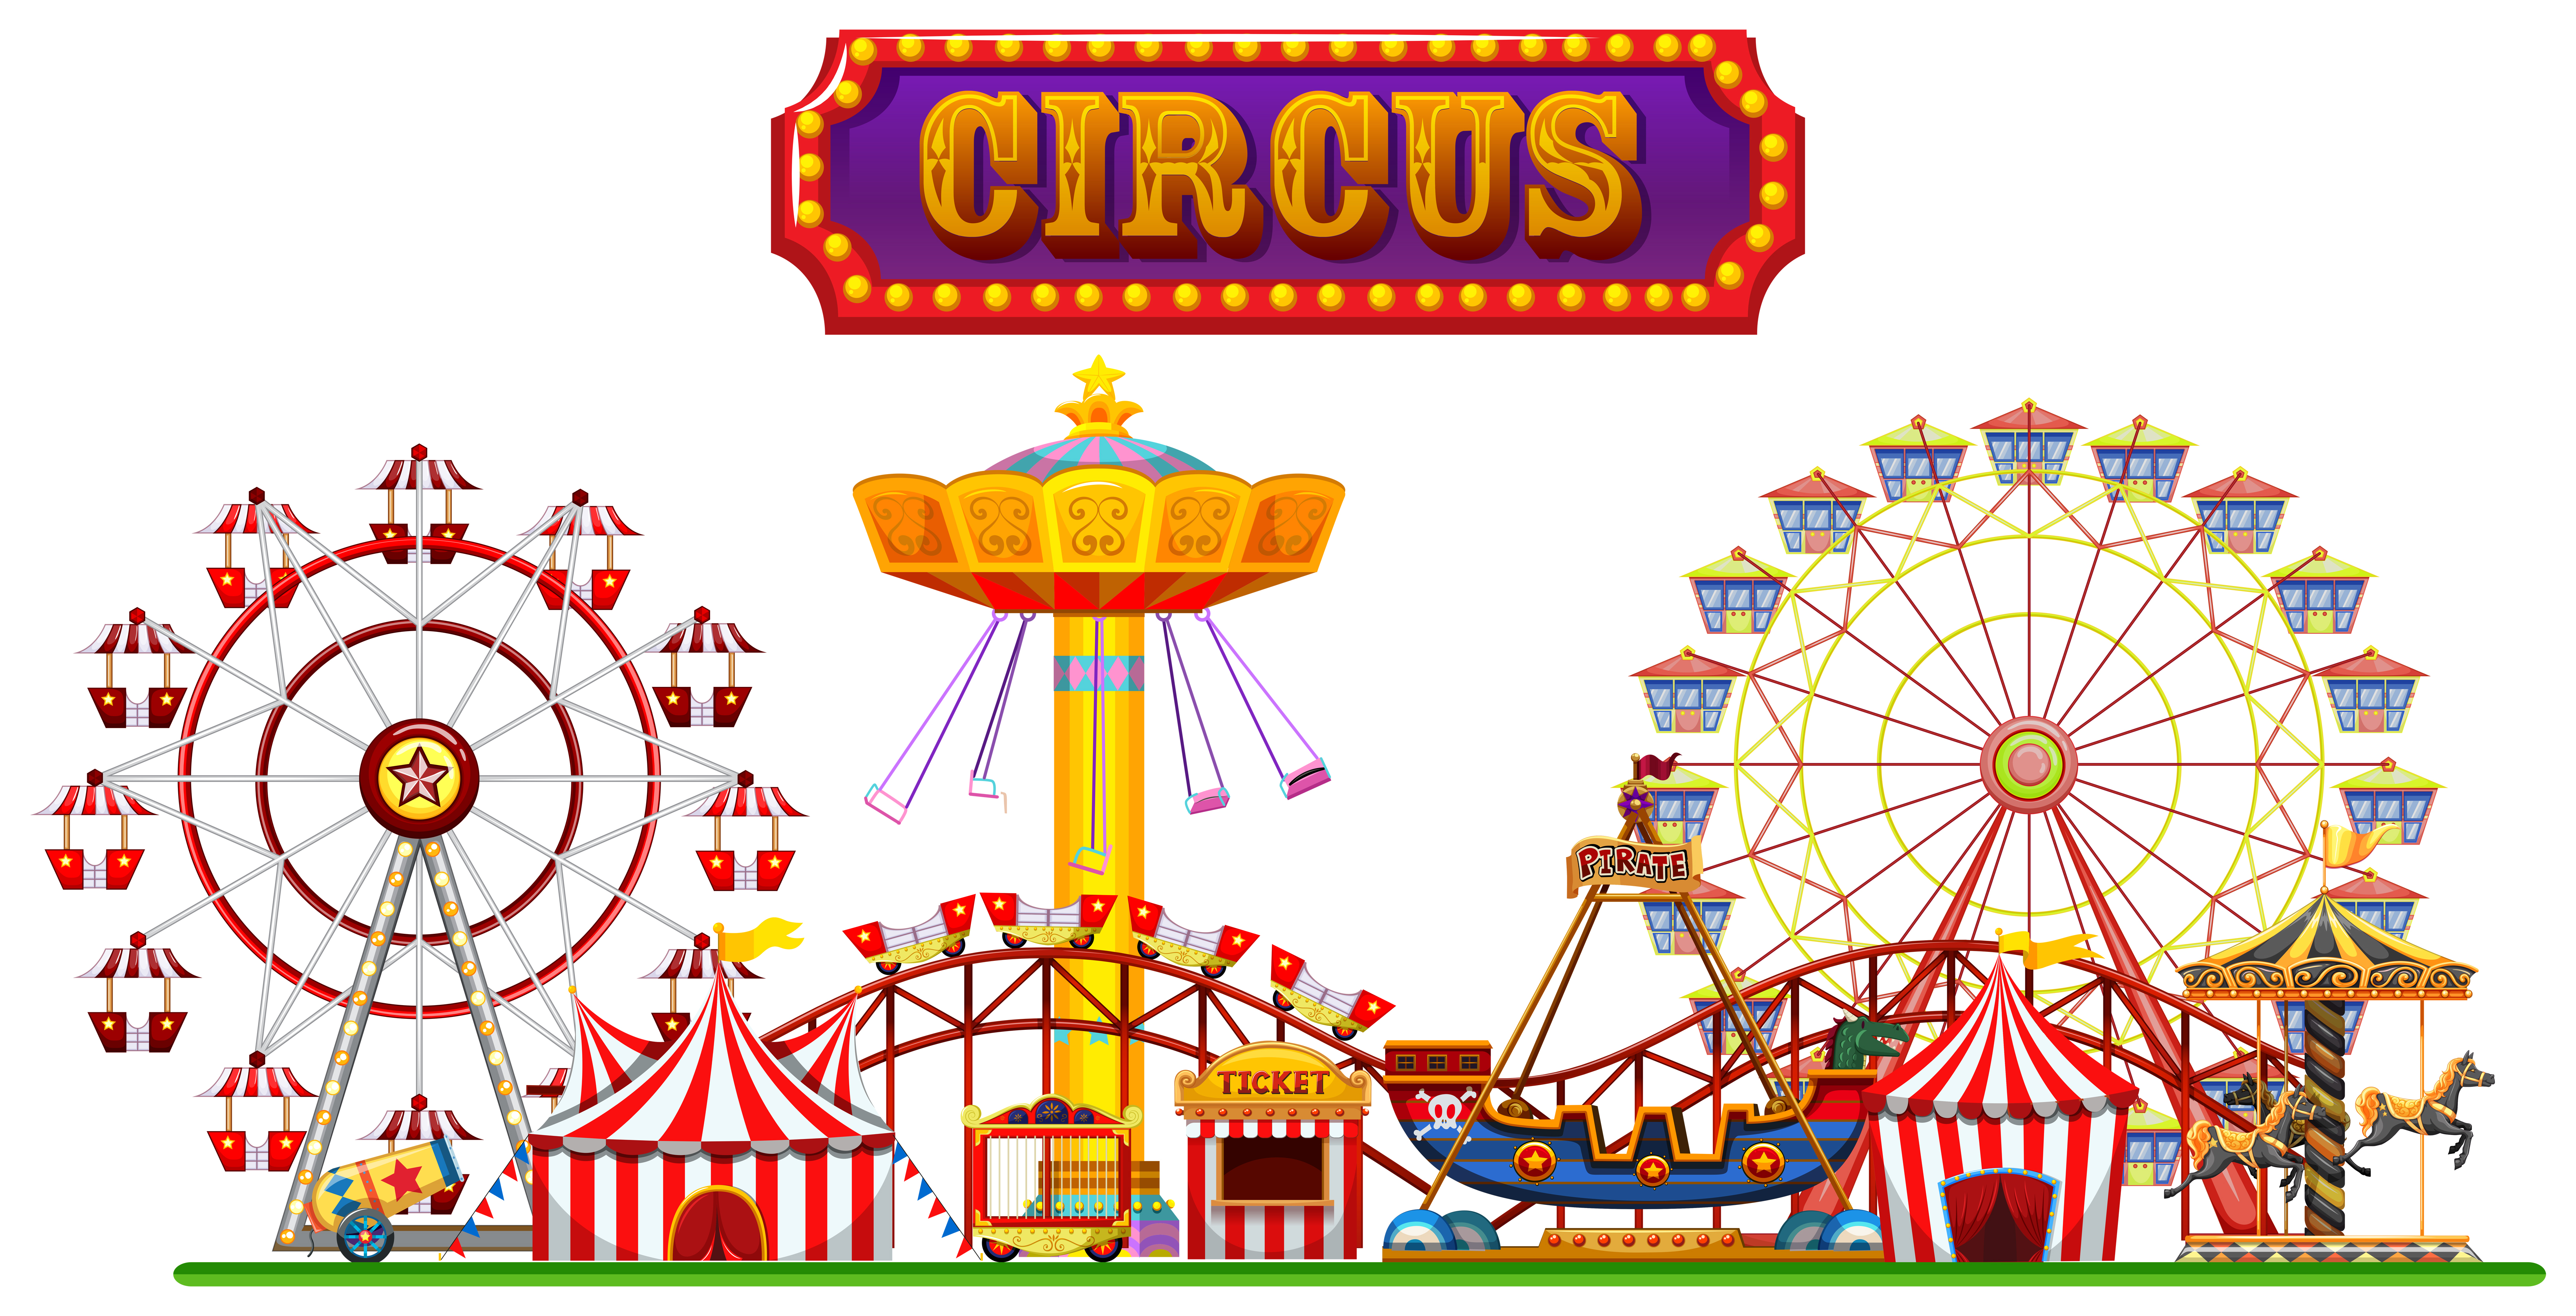 Vintage Circus Poster Background A Circus Fun Fair on W...